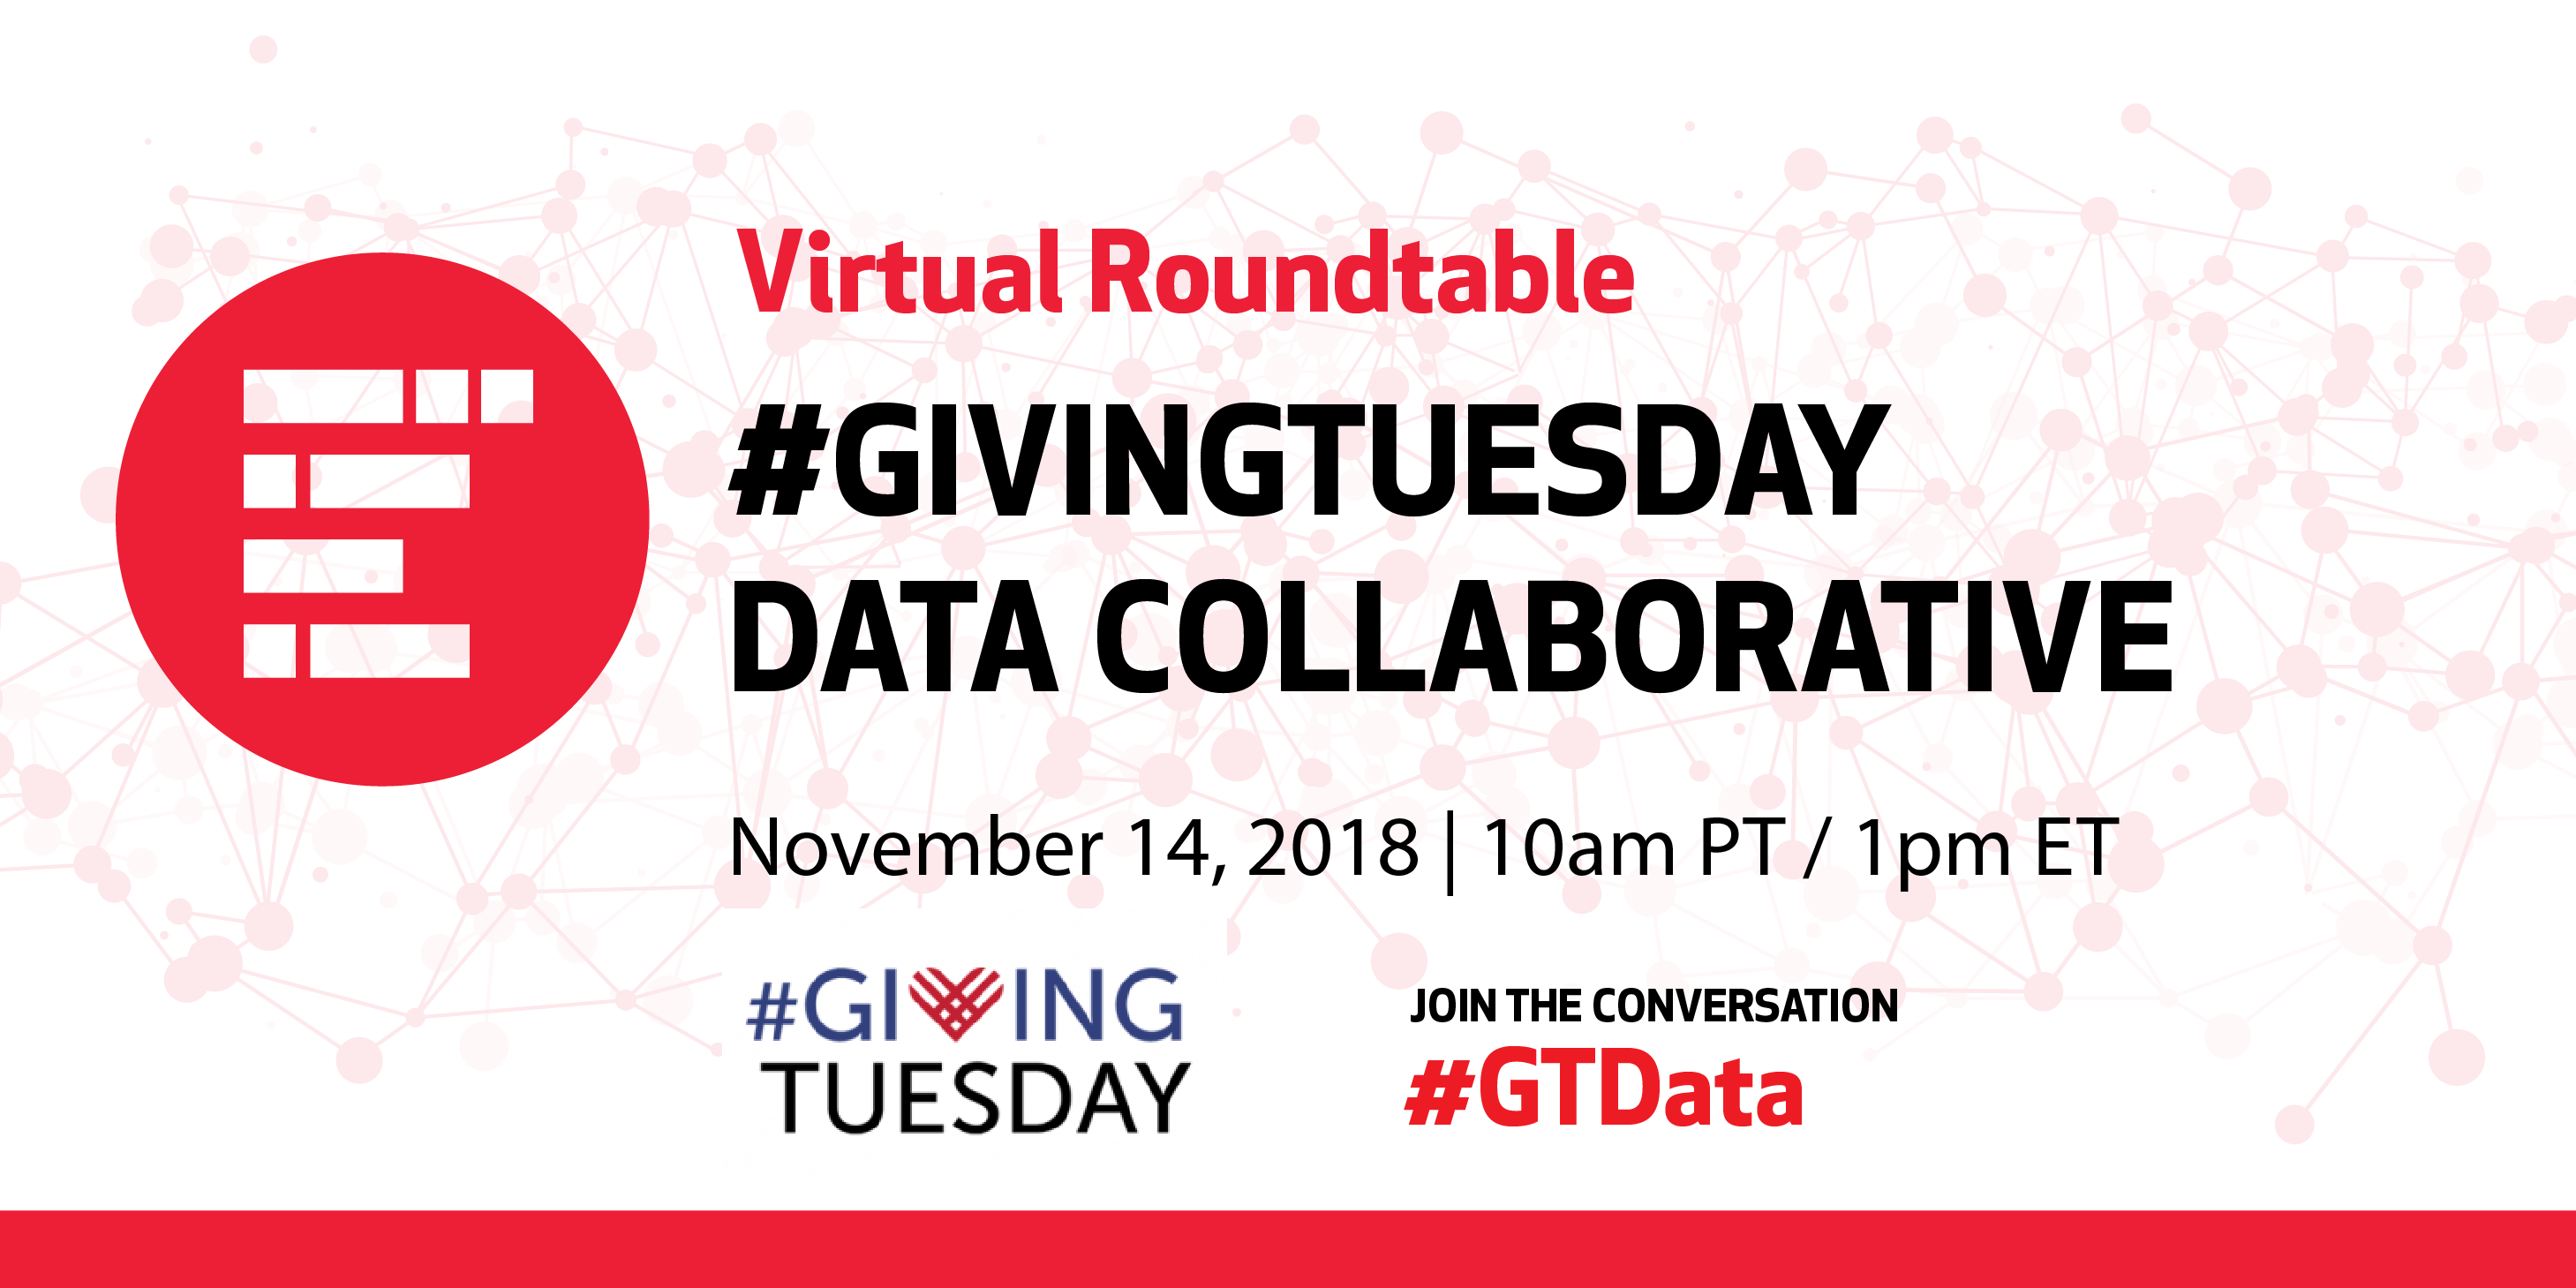 #GivingTuesday Data Collaborative